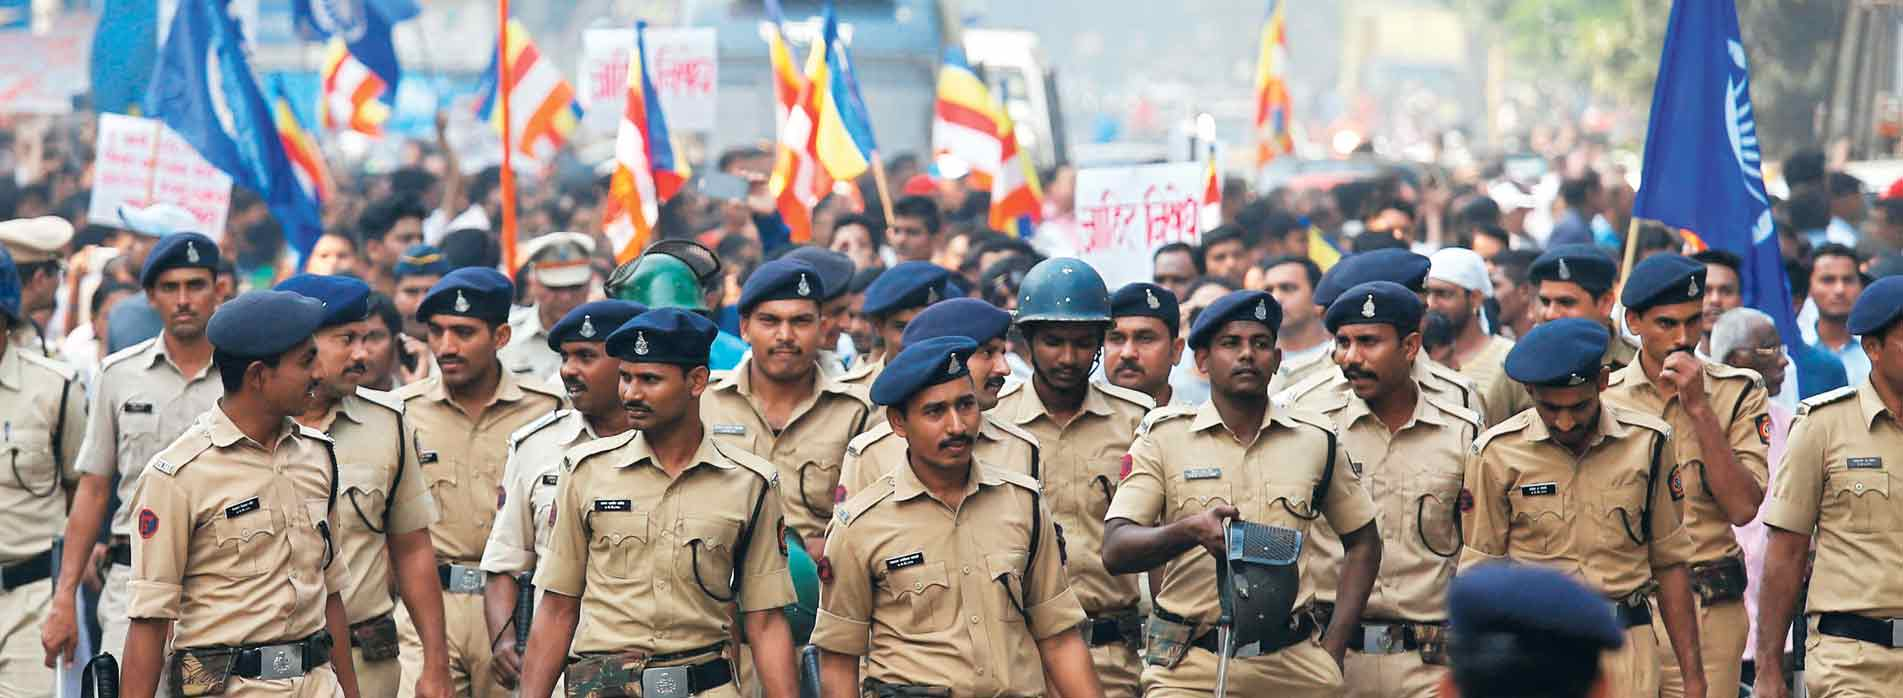 Politicians don't want reforms in the police force